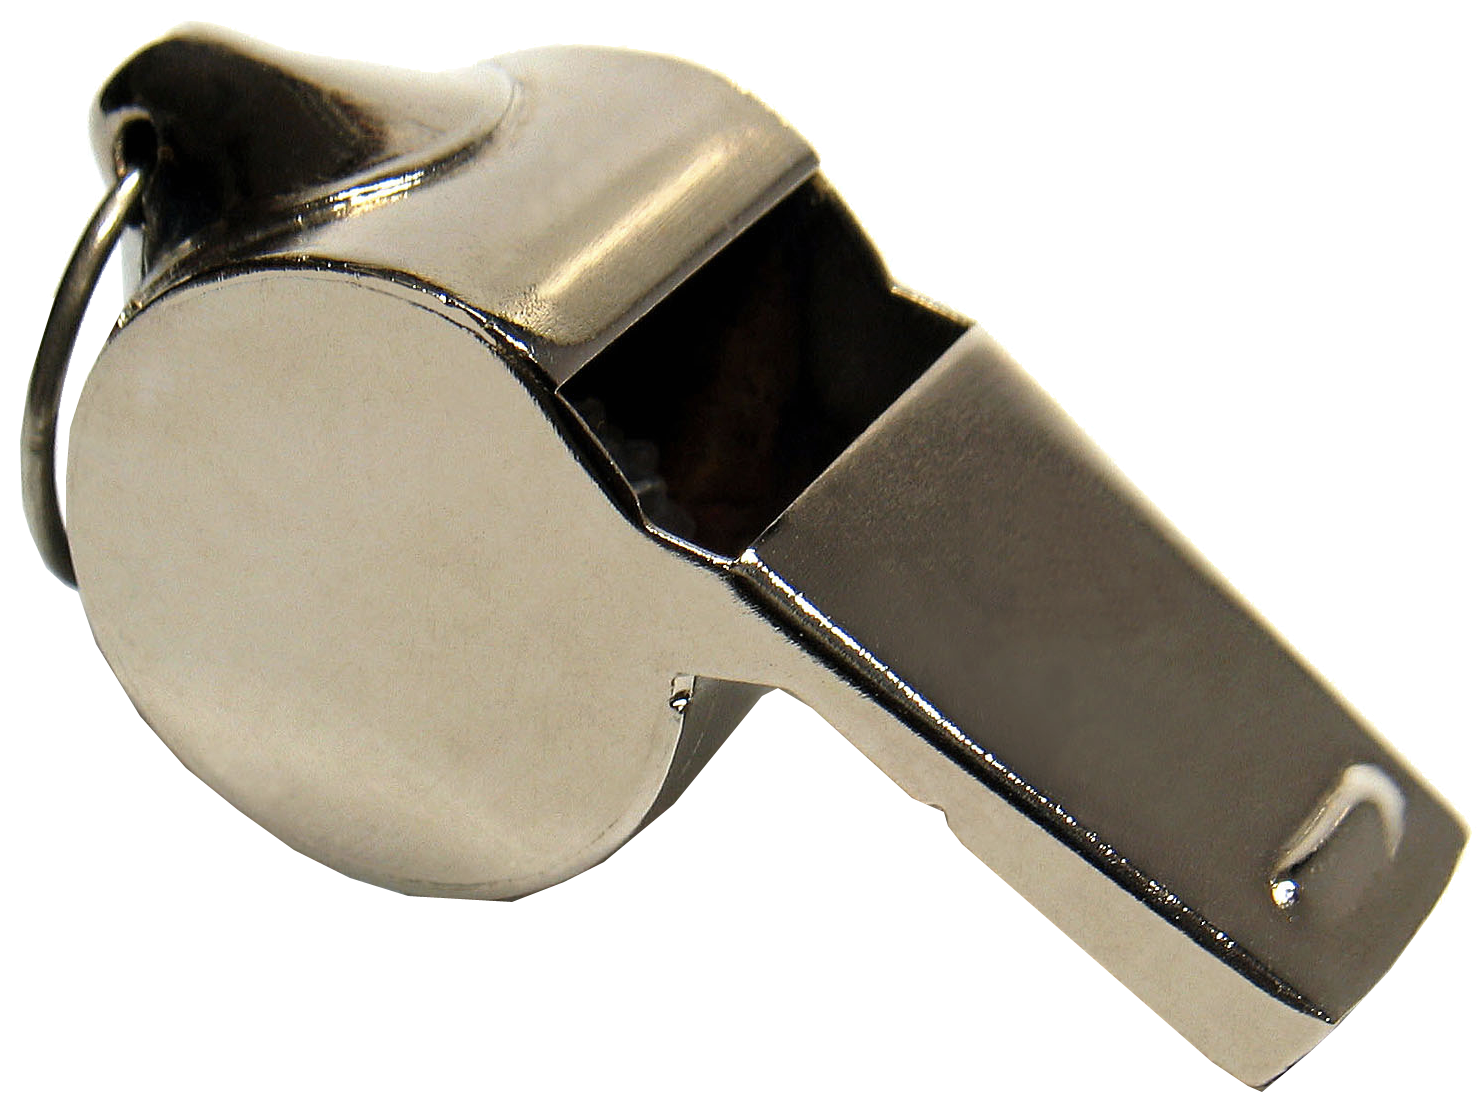 Png Whistle Hdpng.com 1478 - Whistle, Transparent background PNG HD thumbnail